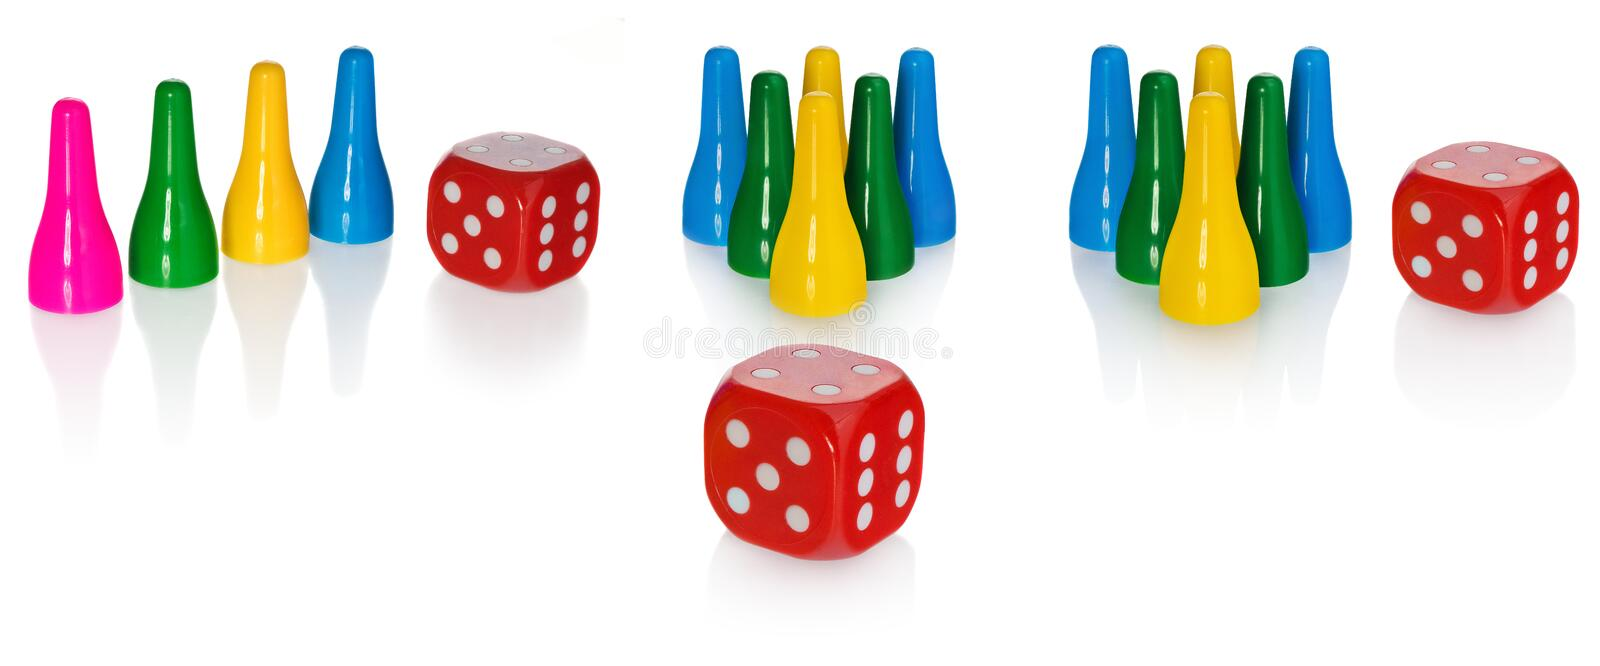 Colored pawns and red dice. Set pieces in the colors yellow, green, blue. Cube in red with white eyes. royalty free stock image